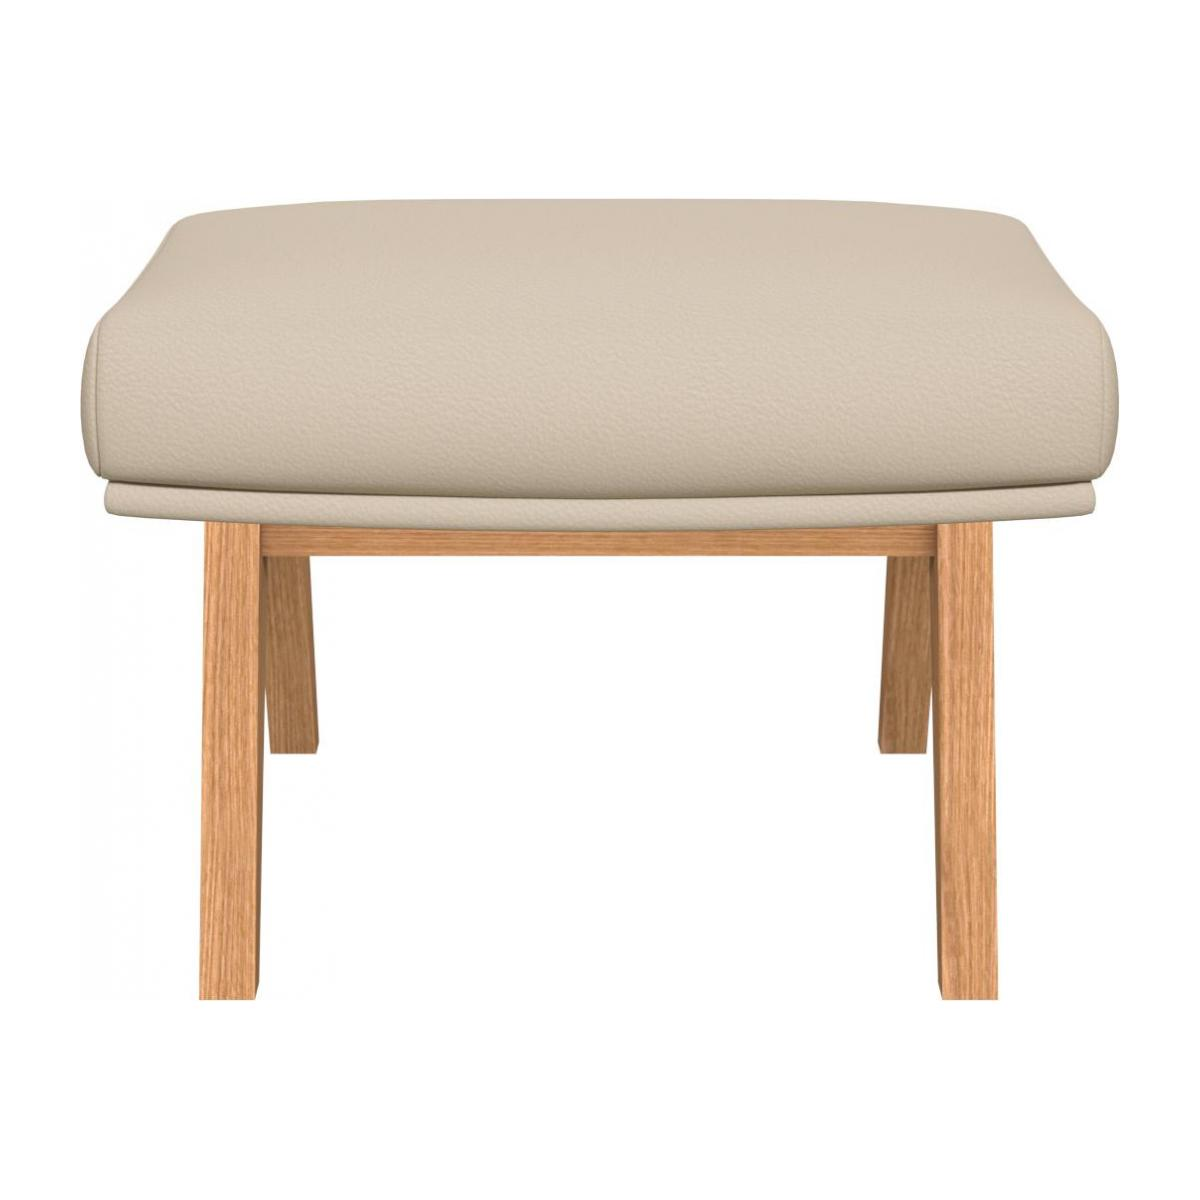 Footstool in Savoy semi-aniline leather, off white with oak legs n°2